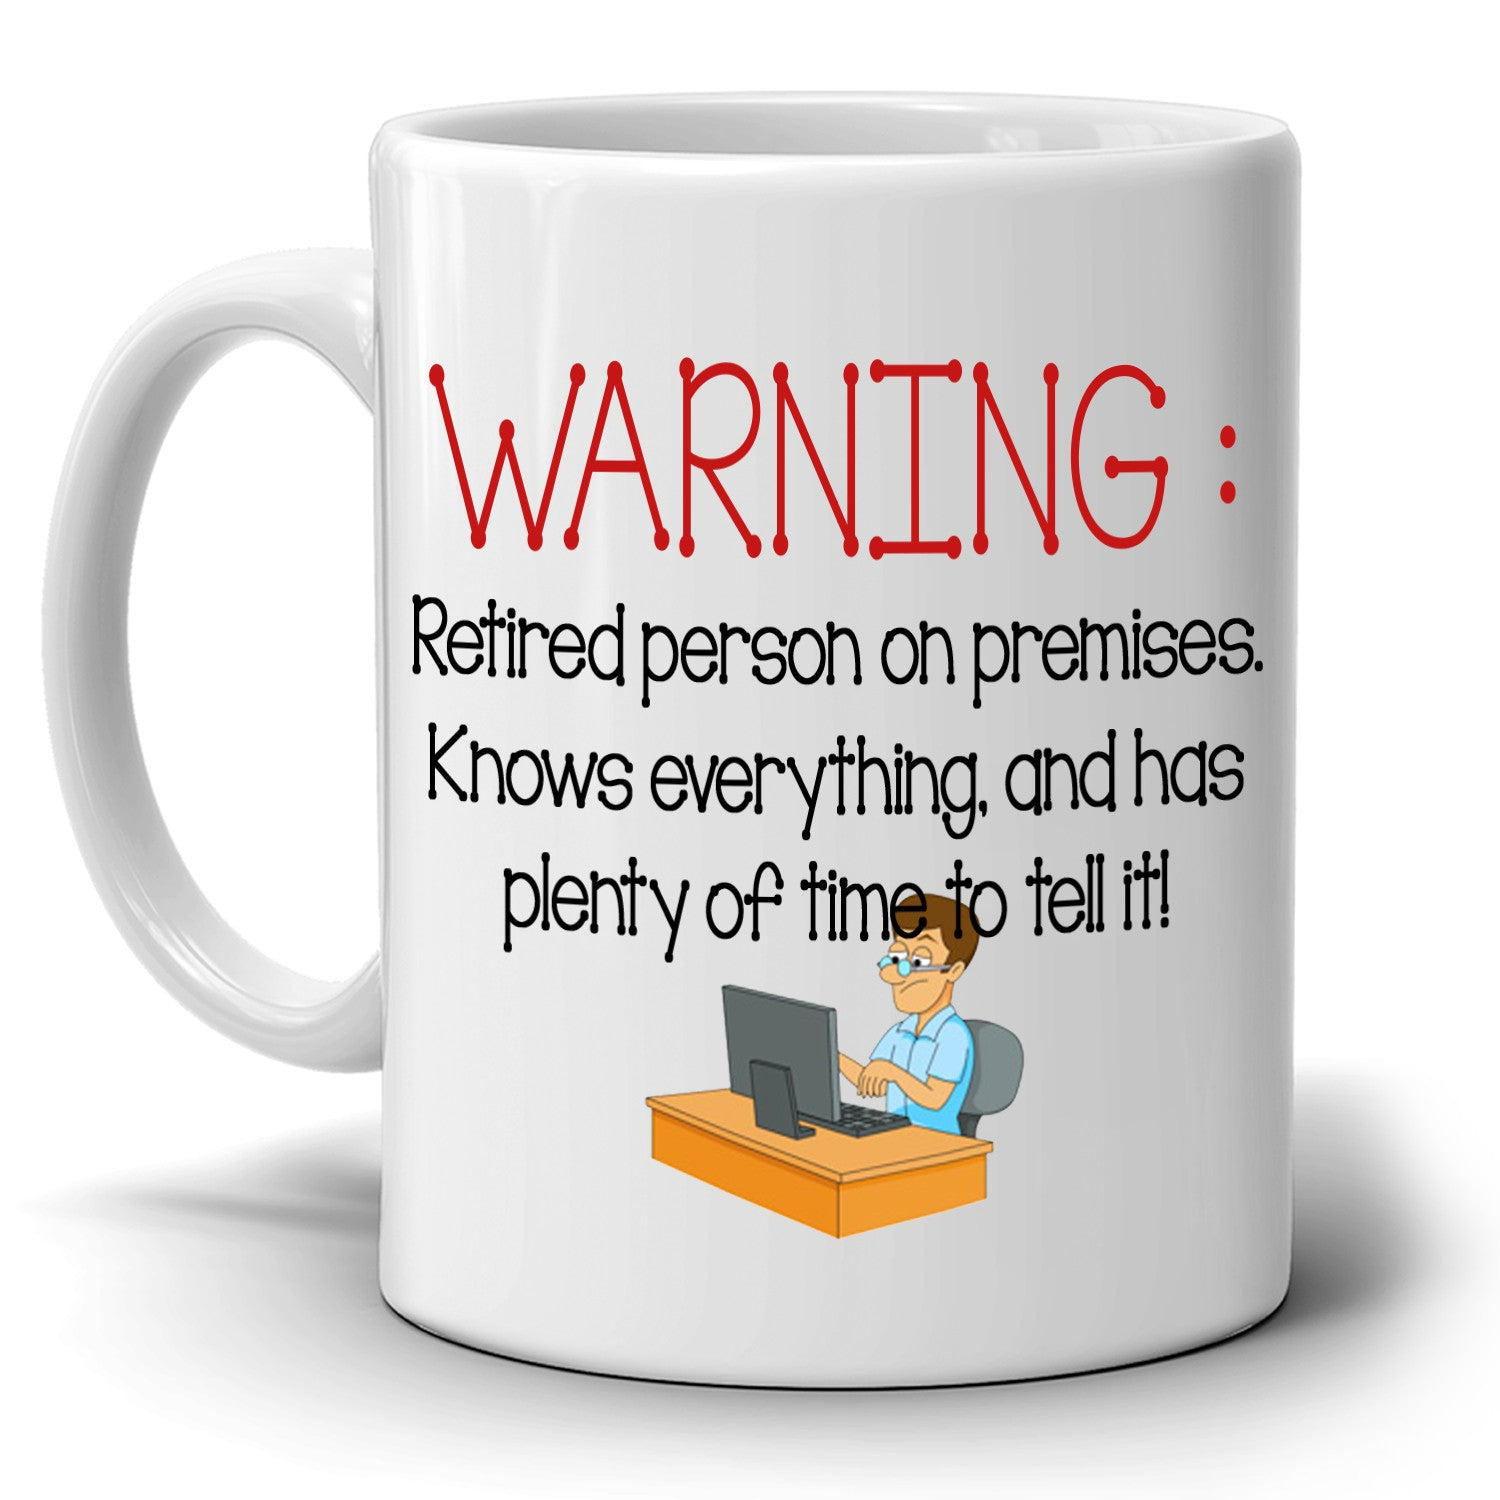 Funny Humorous Retirement Gag Gifts Mug for Retiree Warning Retired Persons on Premises, Printed on